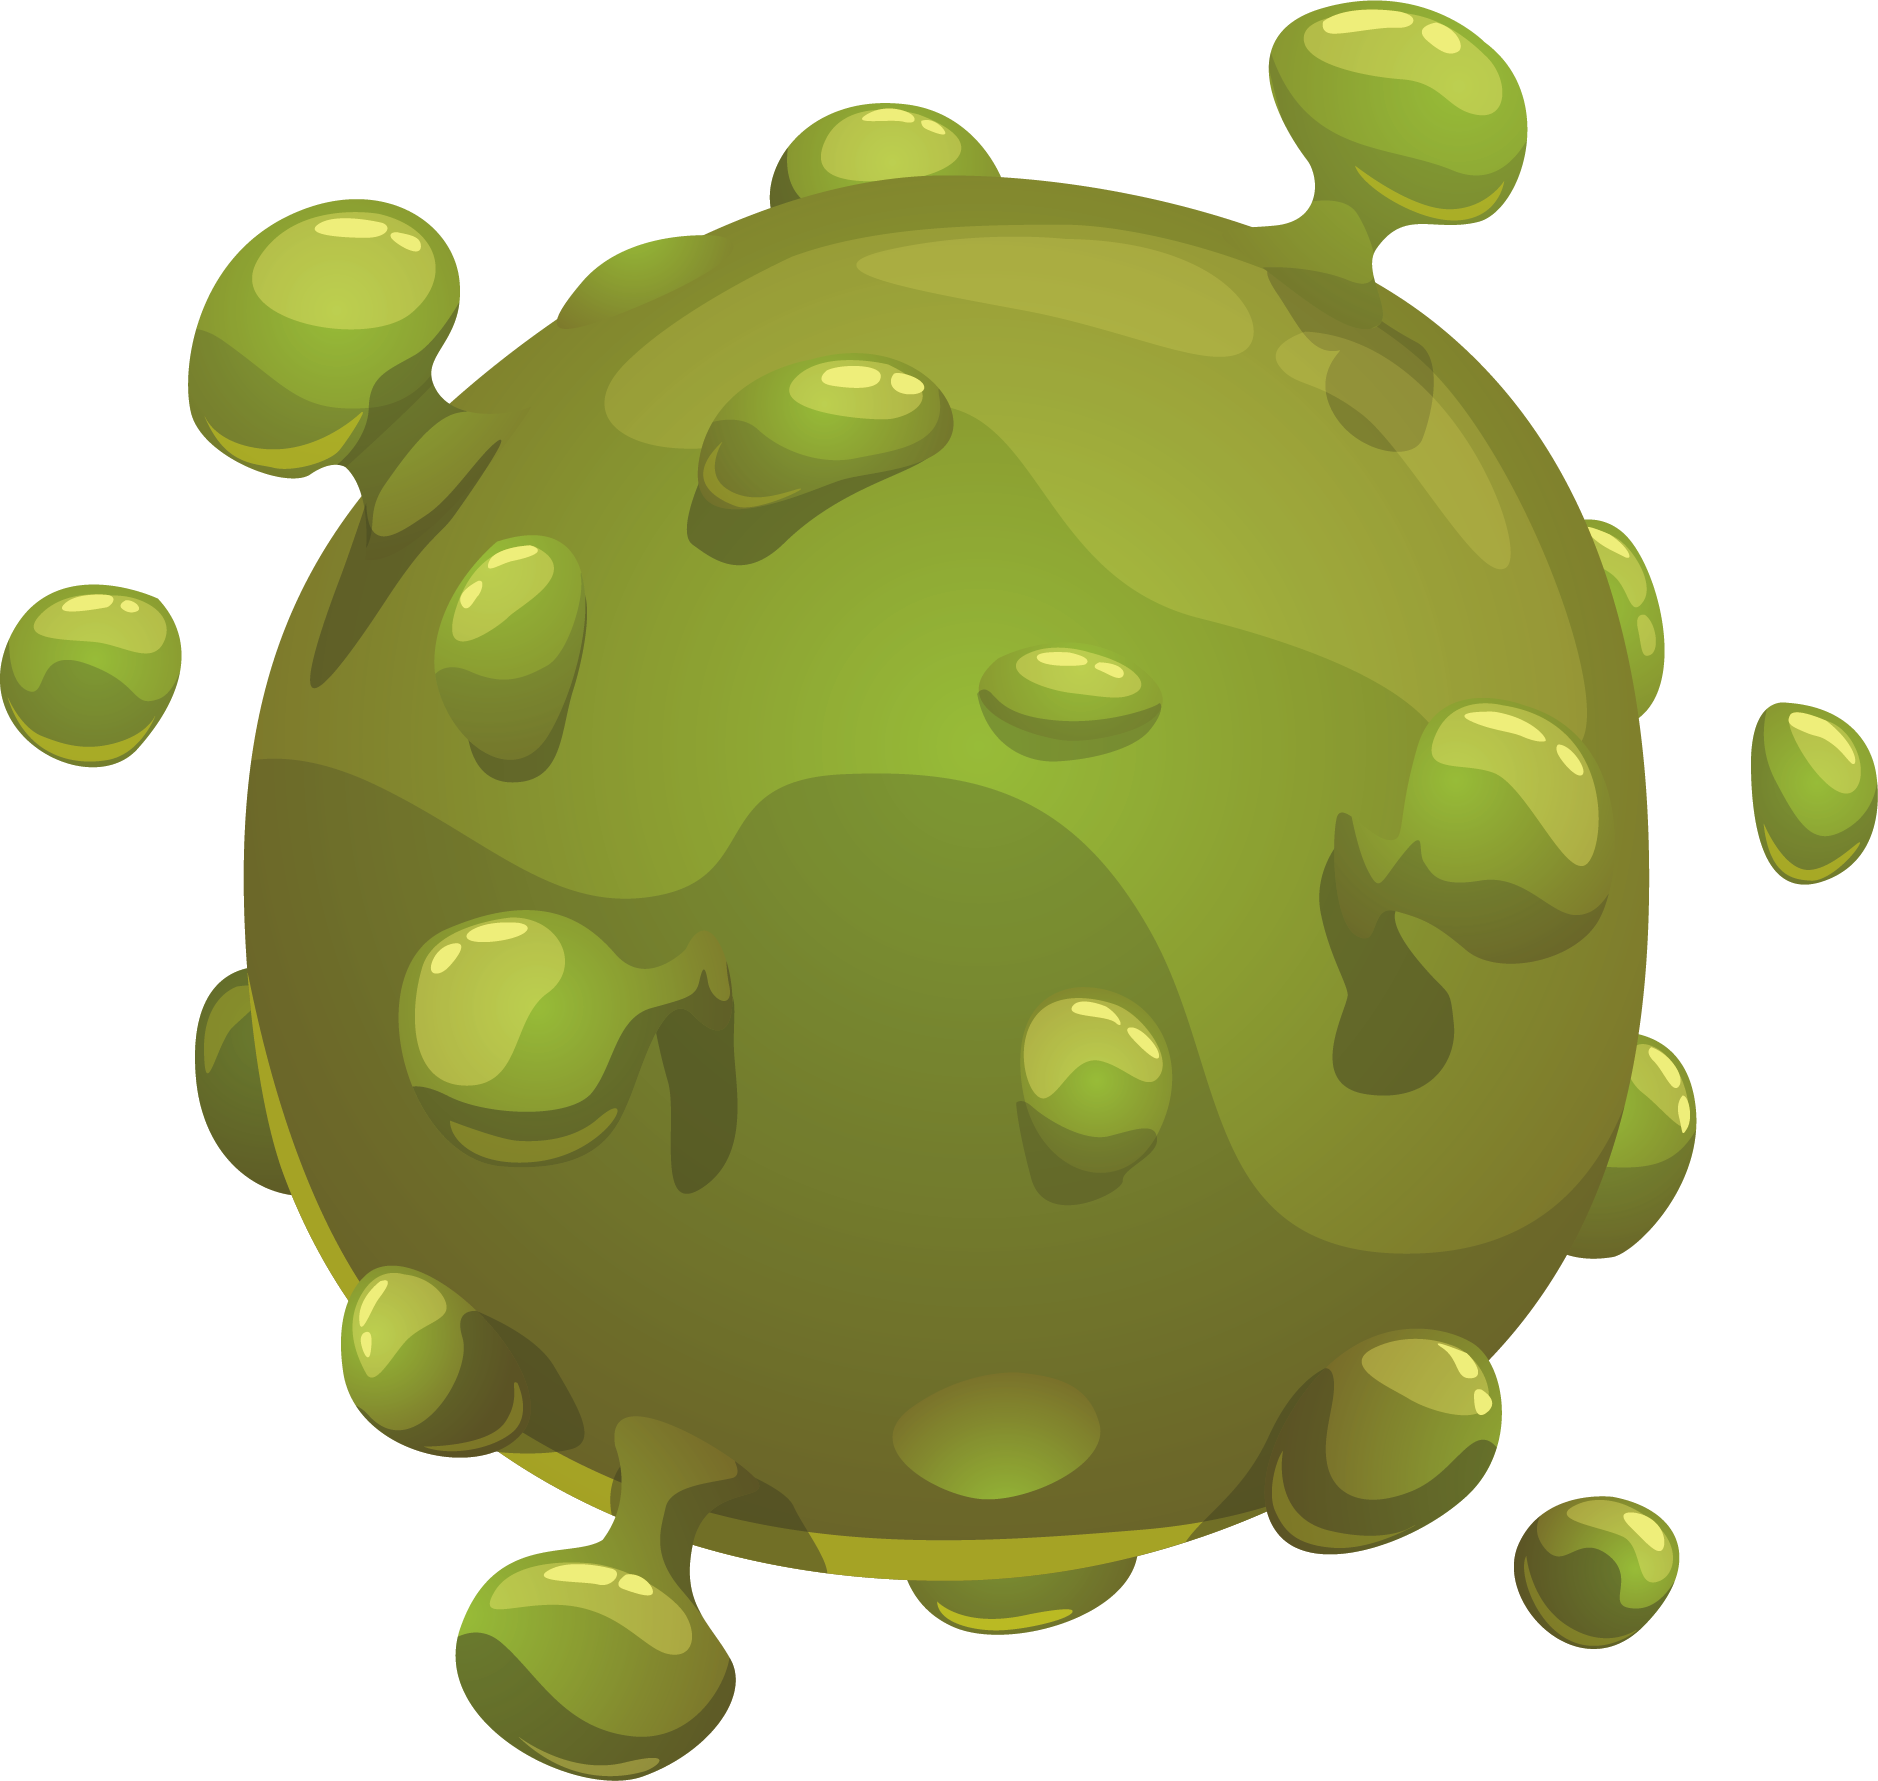 Planet clipart green planet. Microorganism bacteria transprent png